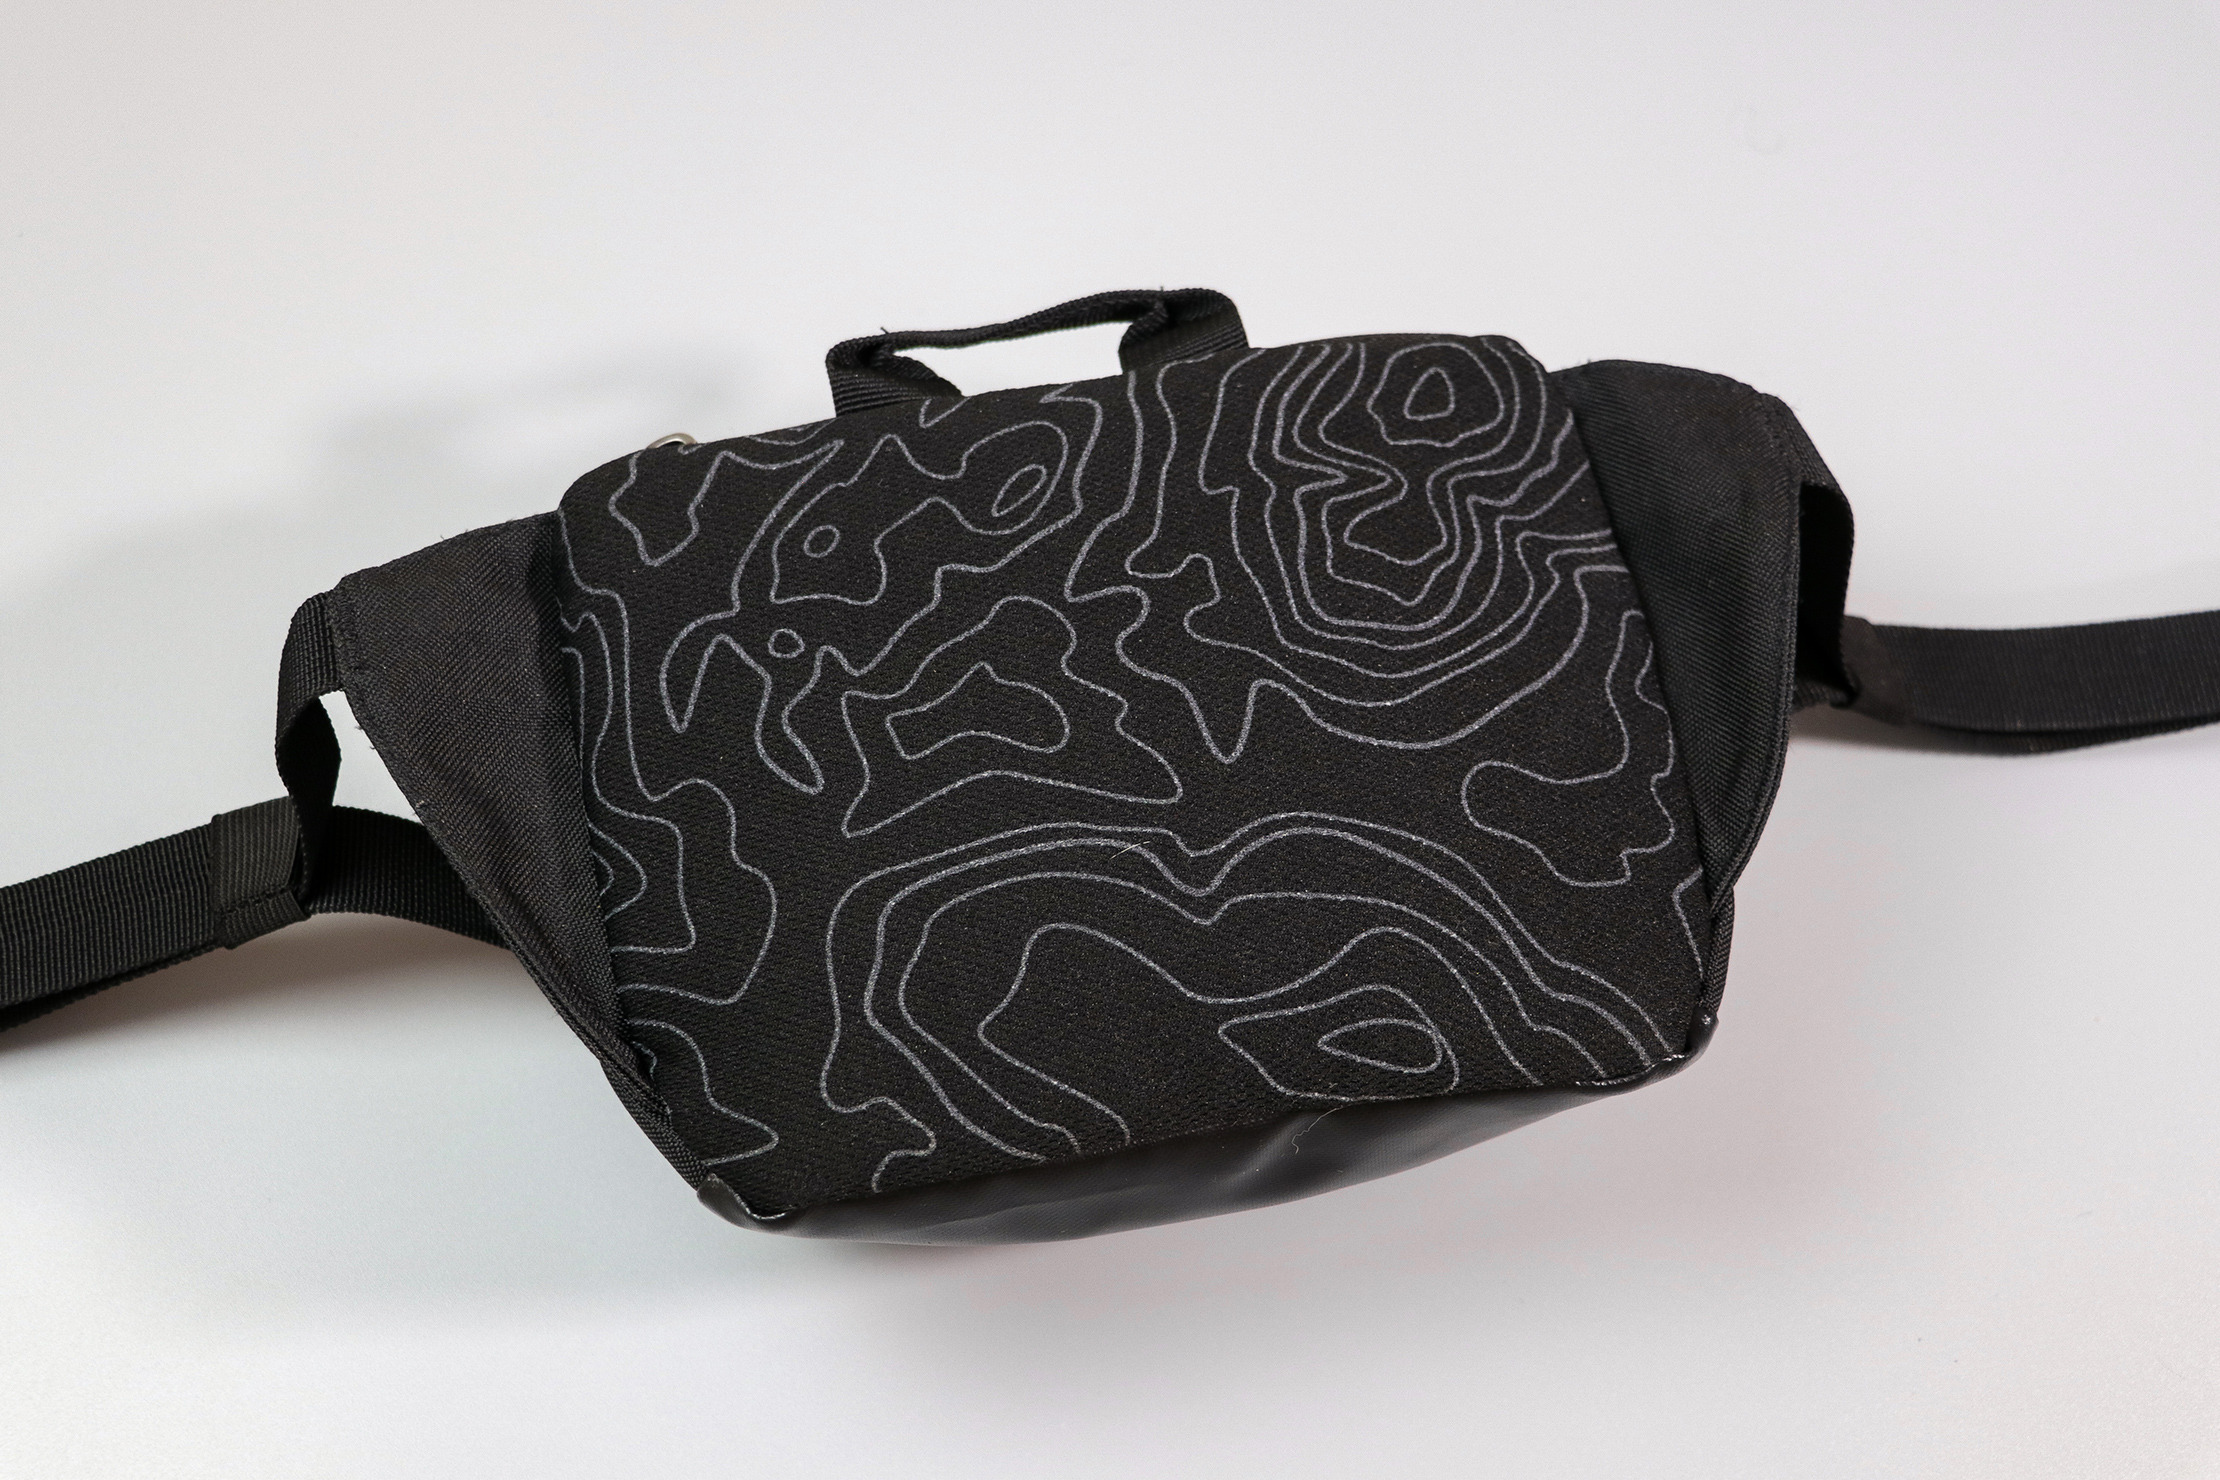 Eagle Creek Wayfinder Waist Pack Back Panel